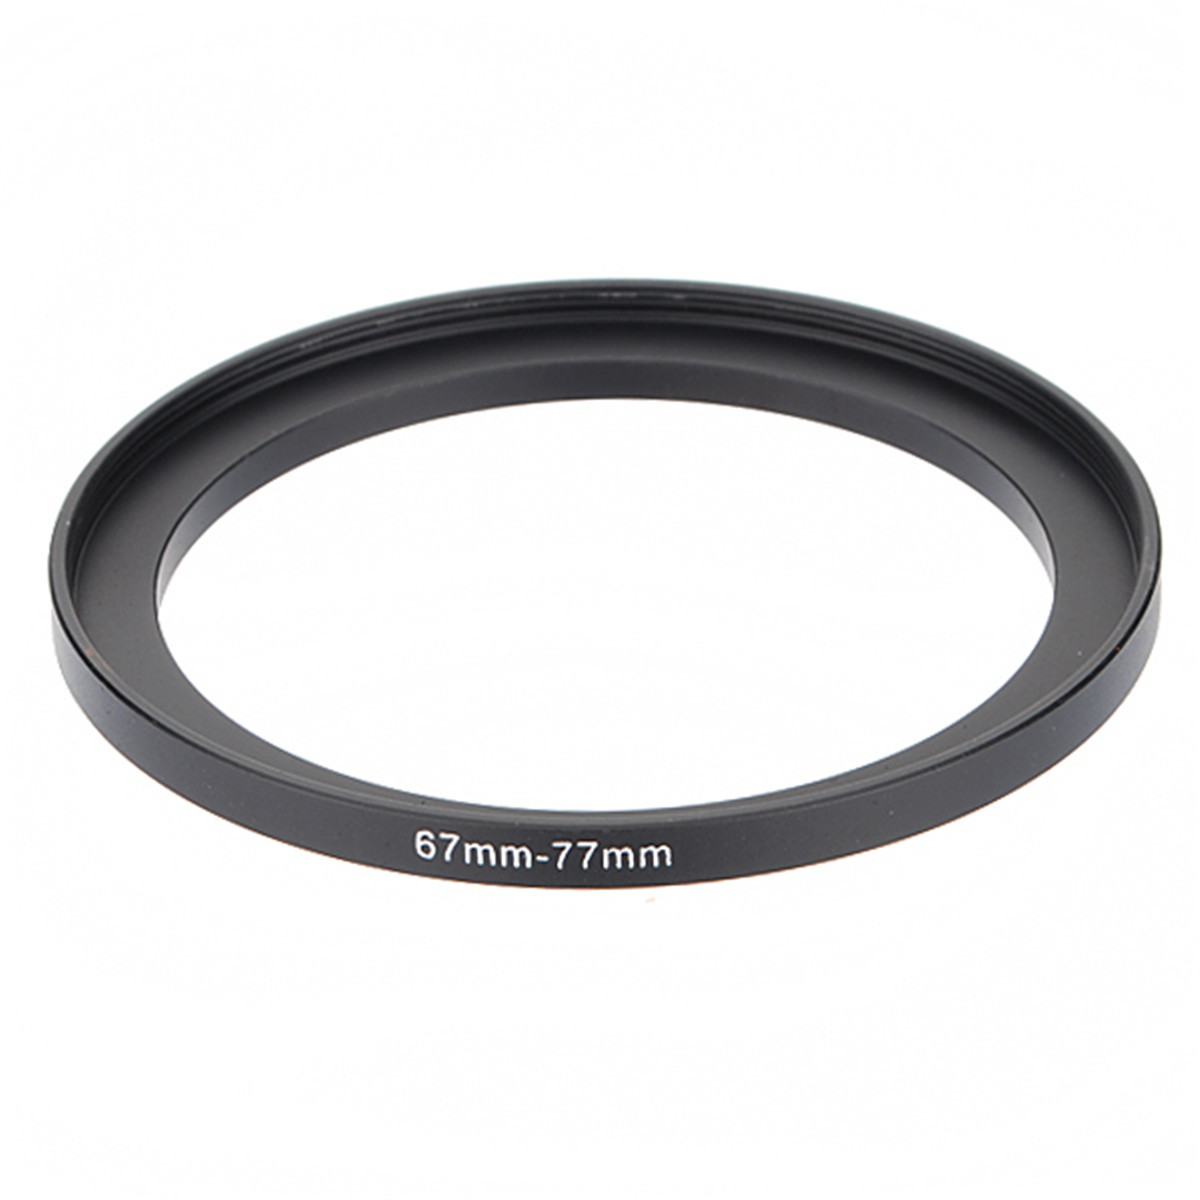 67-77mm 67mm-77mm 67 to 77 Metal Step Up Lens Filter Ring Stepping Adapter Black For Digital Camera DSLR SLR